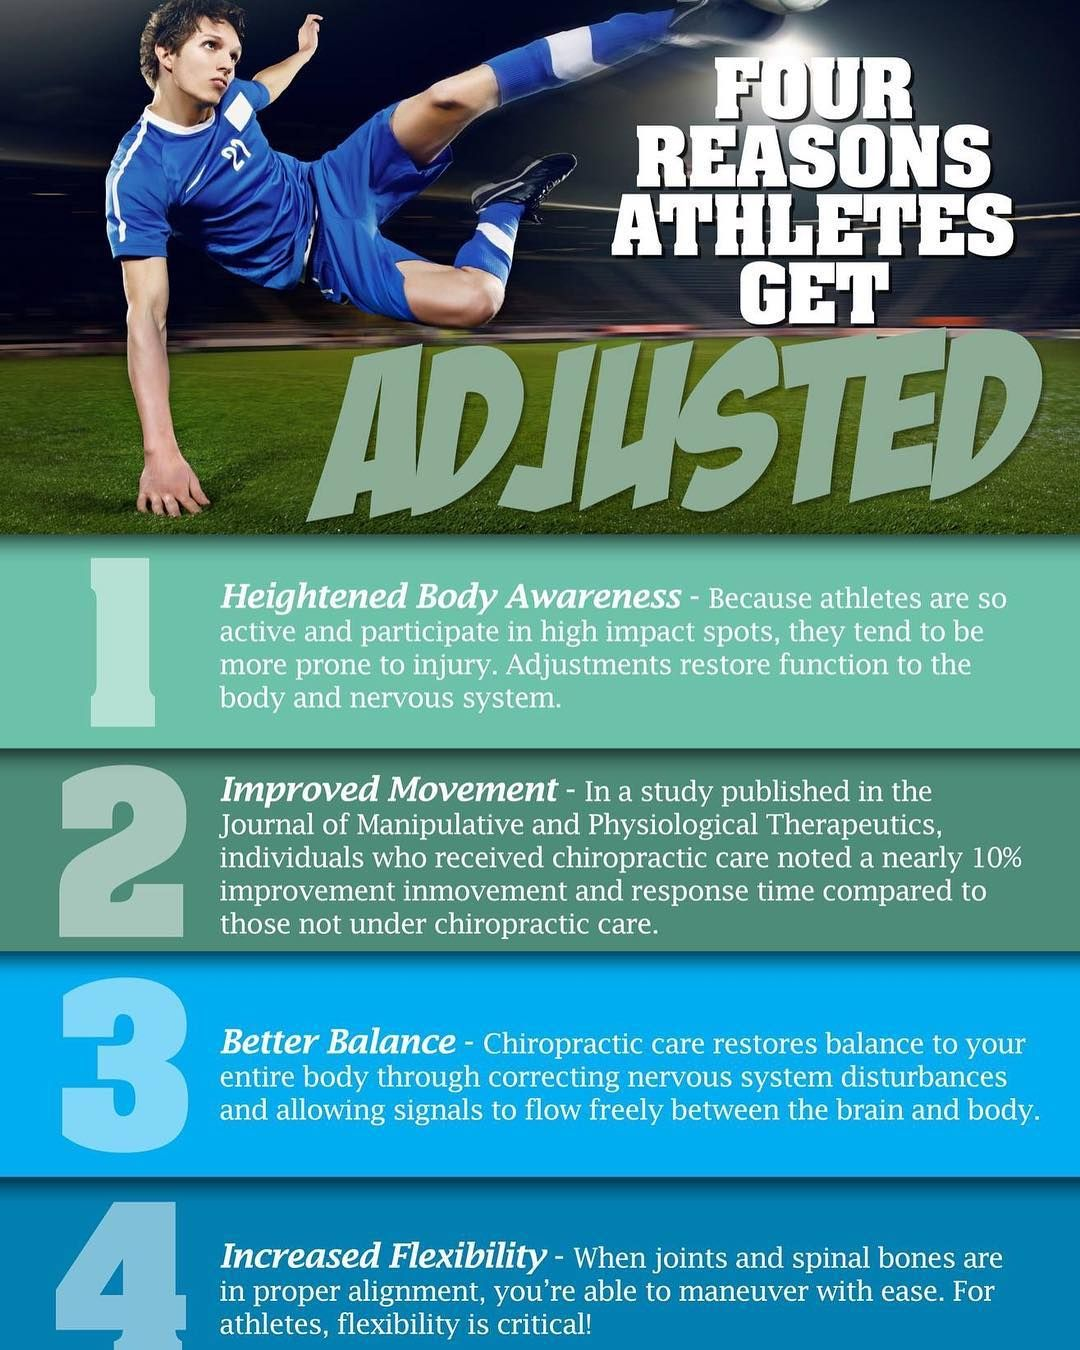 chiropractic keeps athletes performing at their BEST!!